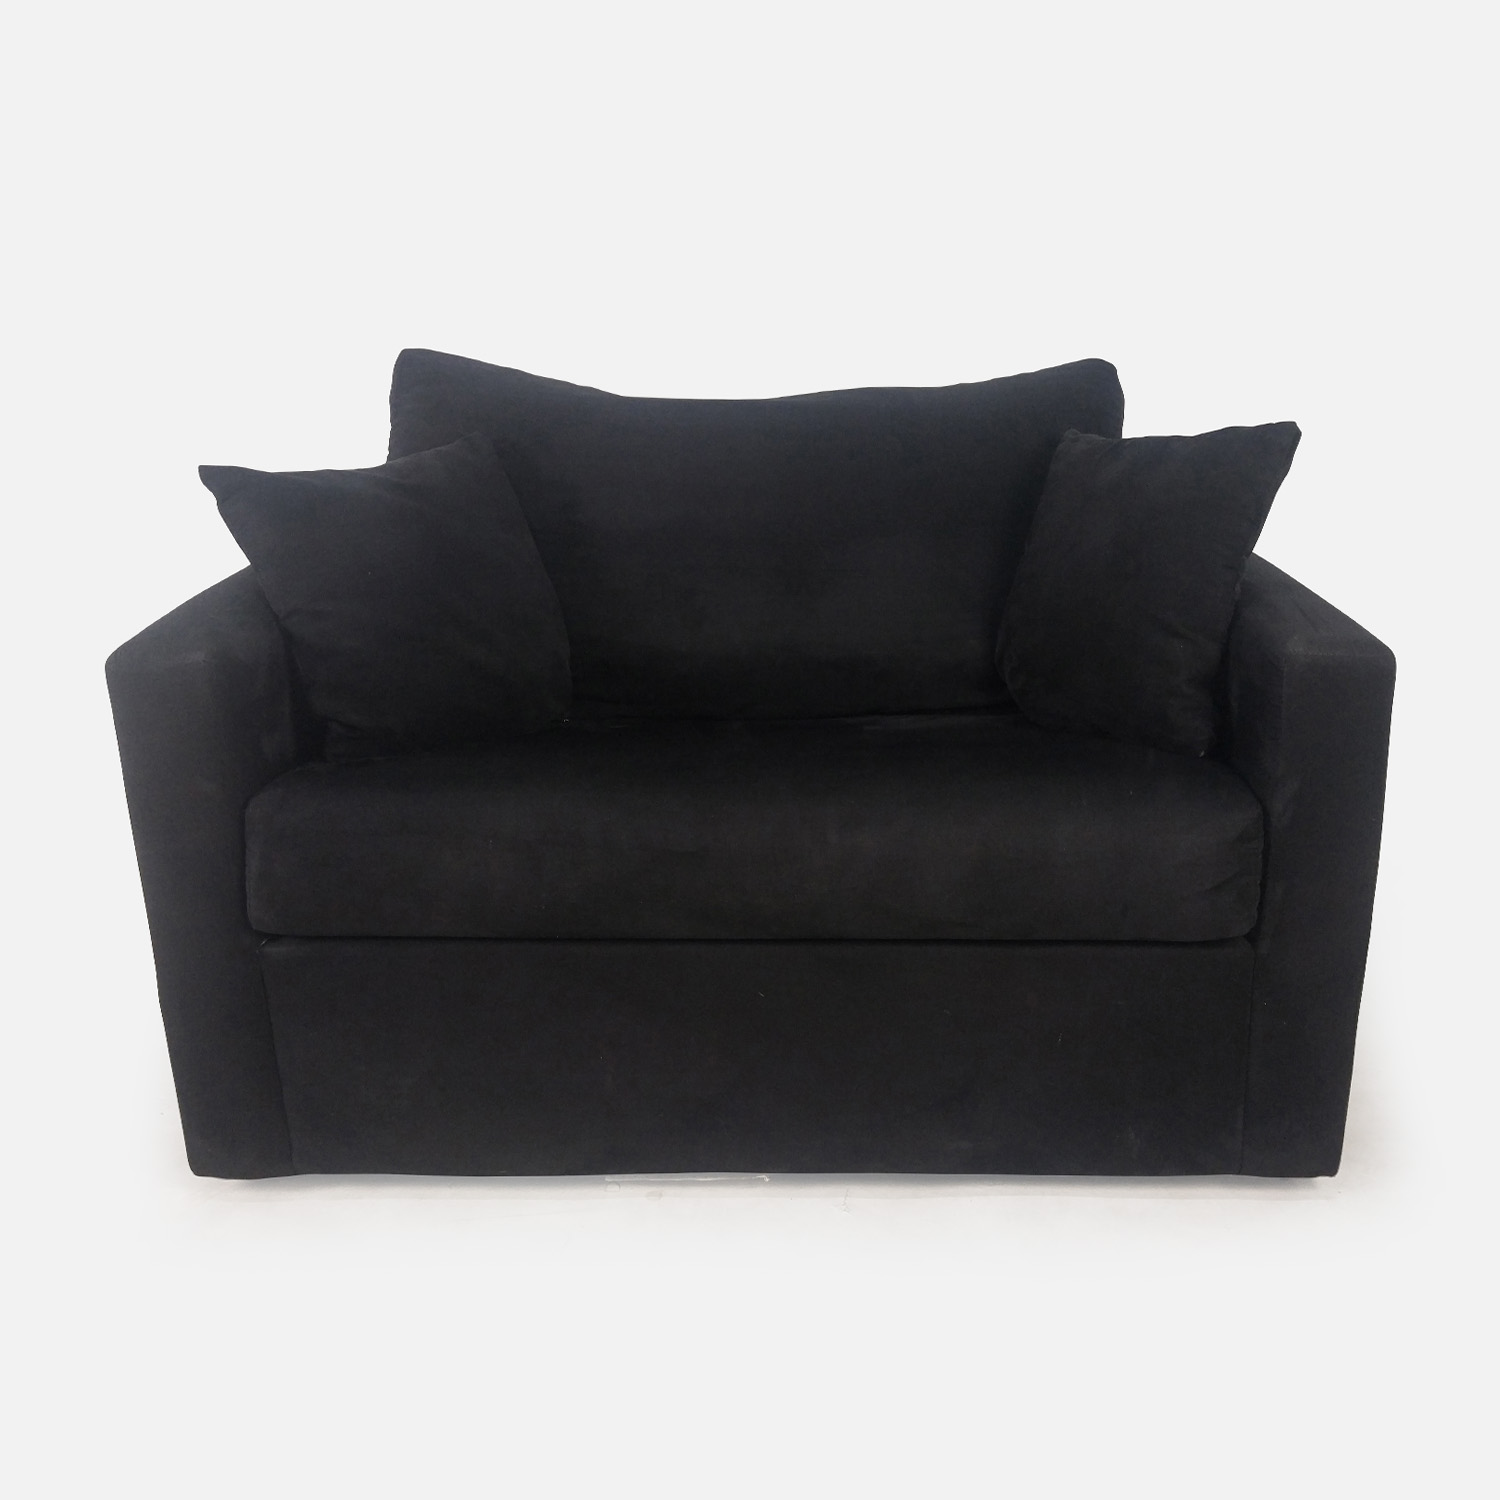 Bob's Discount Furniture Bobs Furniture Loveseat